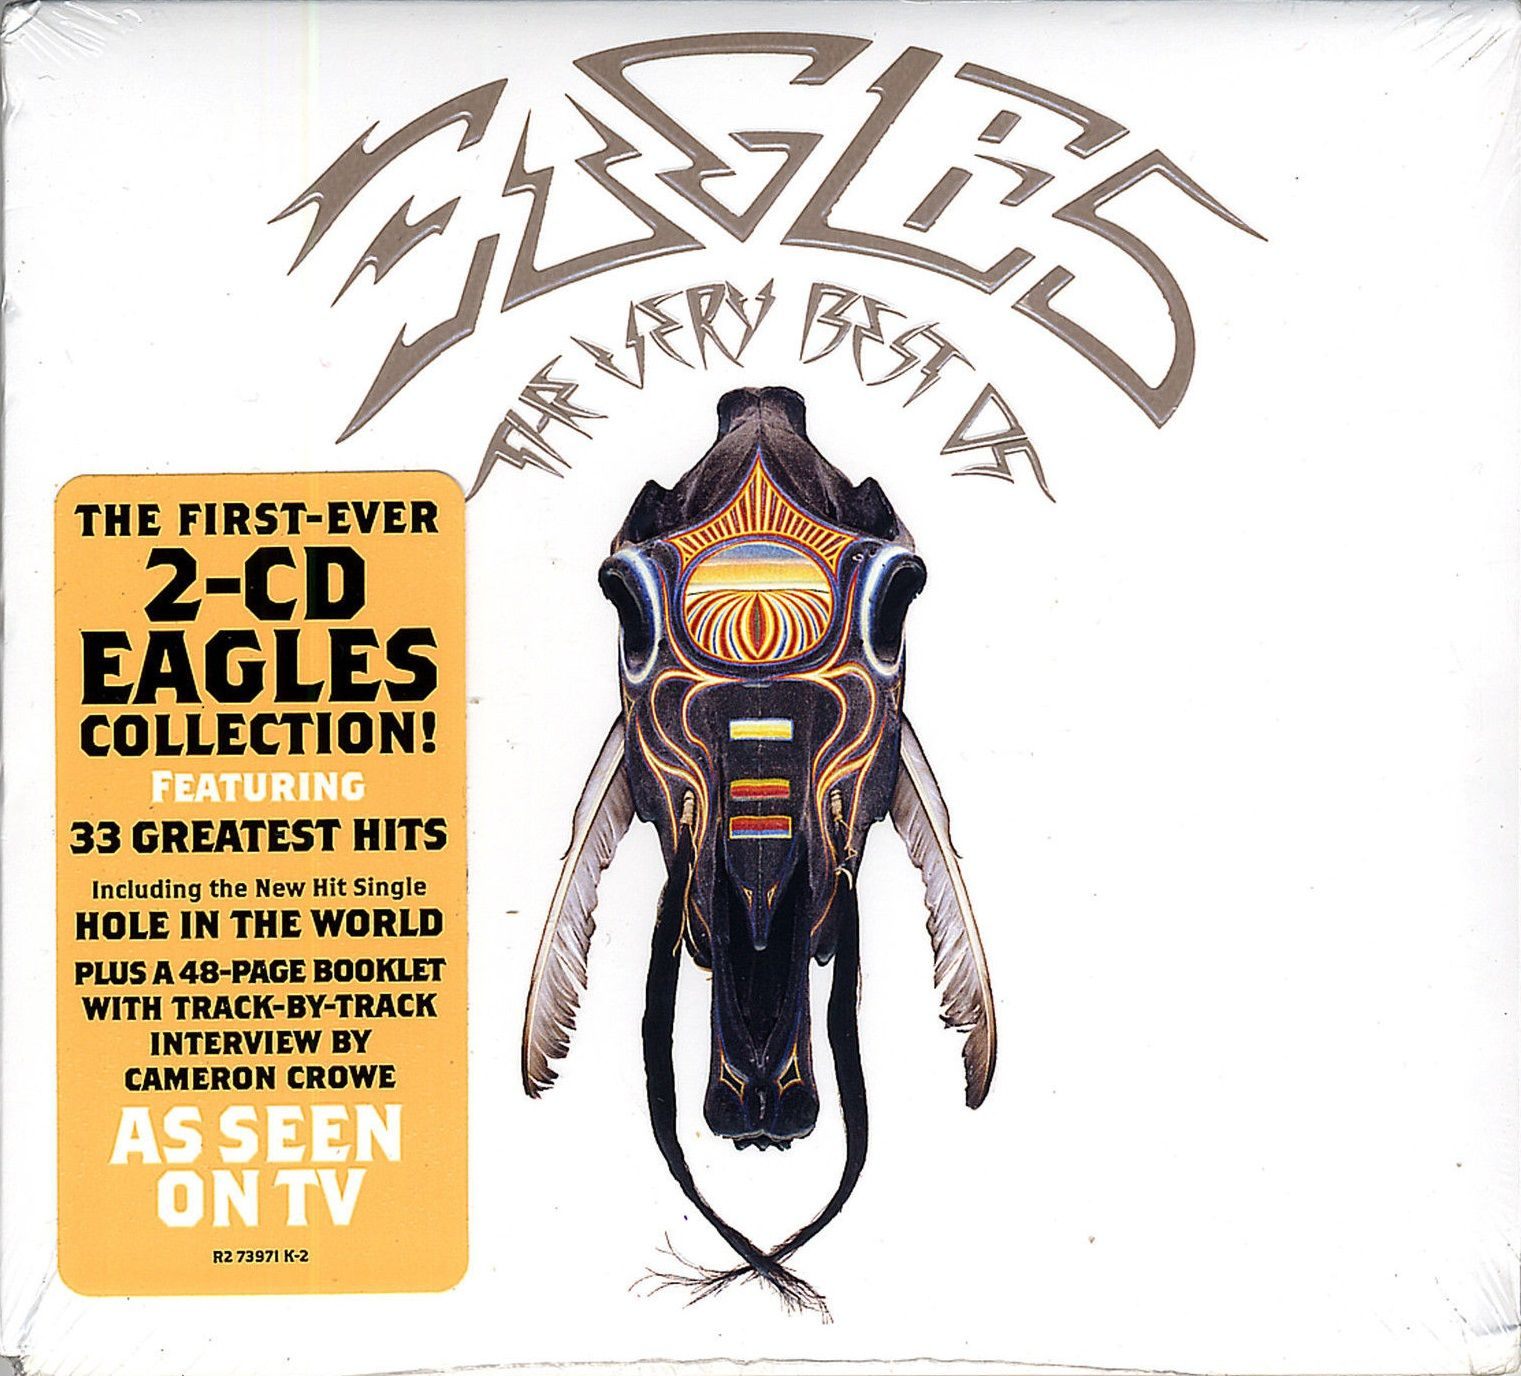 The Very Best Of The Eagles By Eagles Music Charts